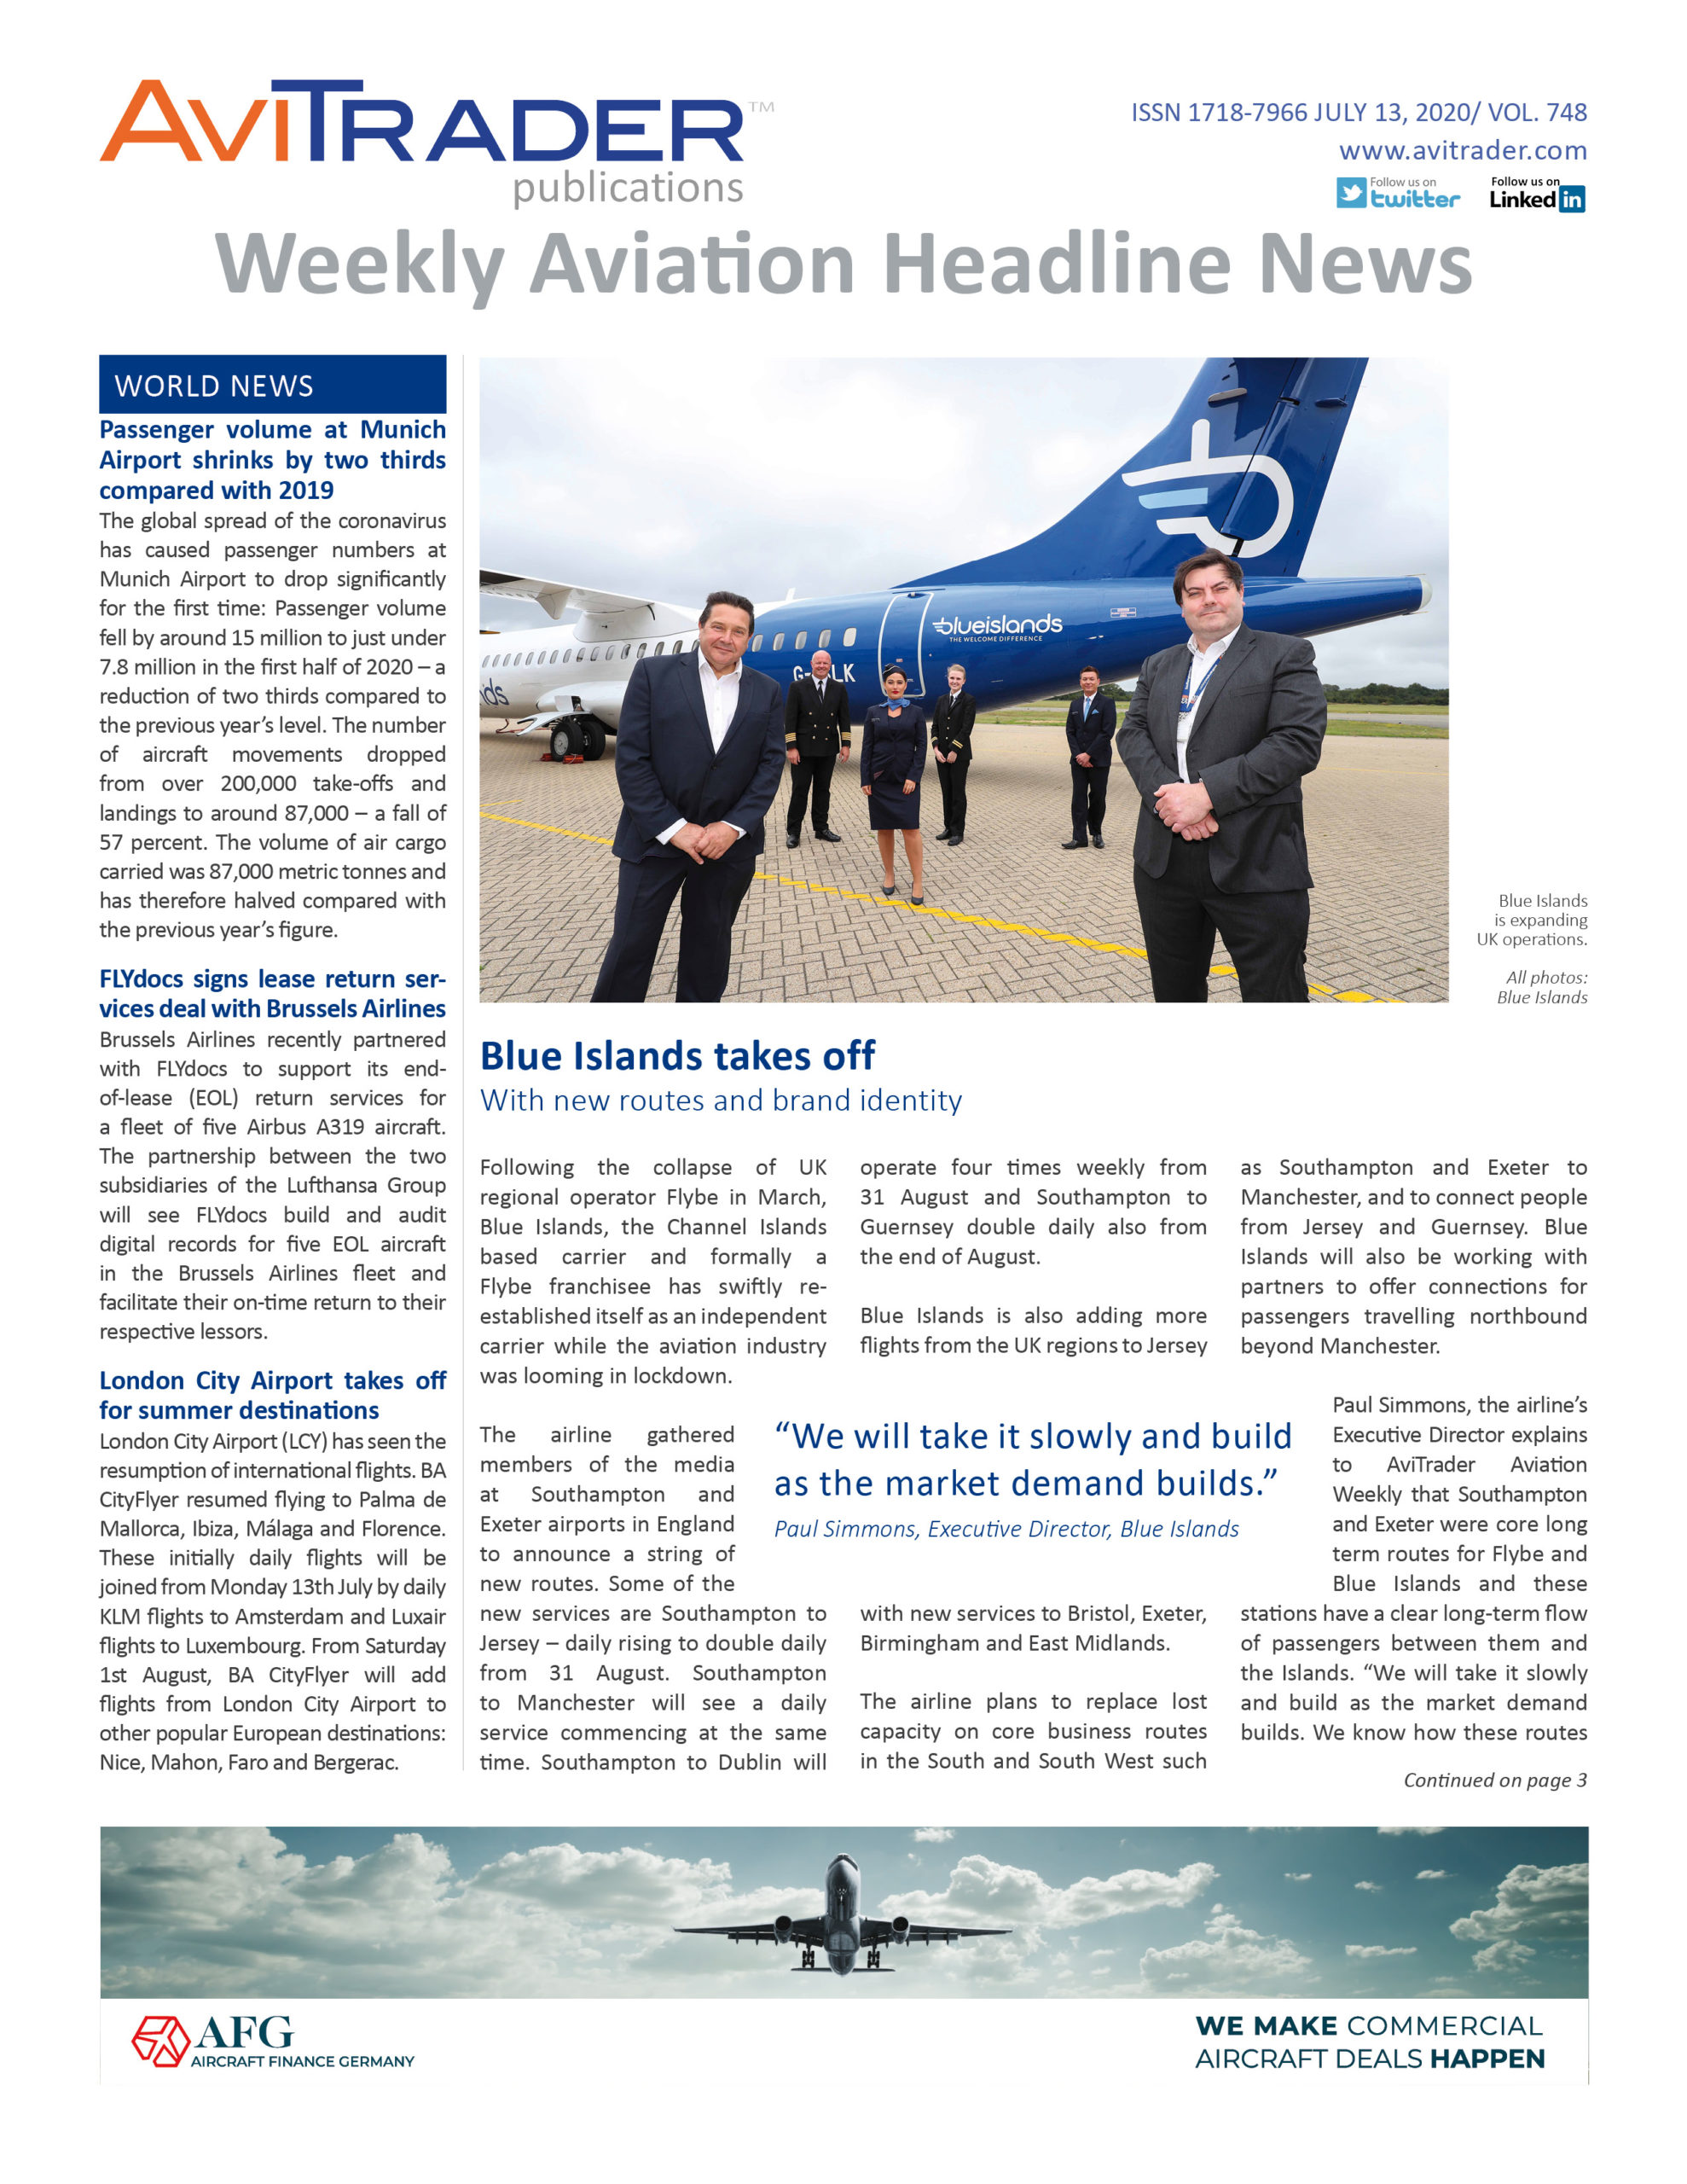 AviTrader_Weekly_Headline_News_Cover_2020-07-13